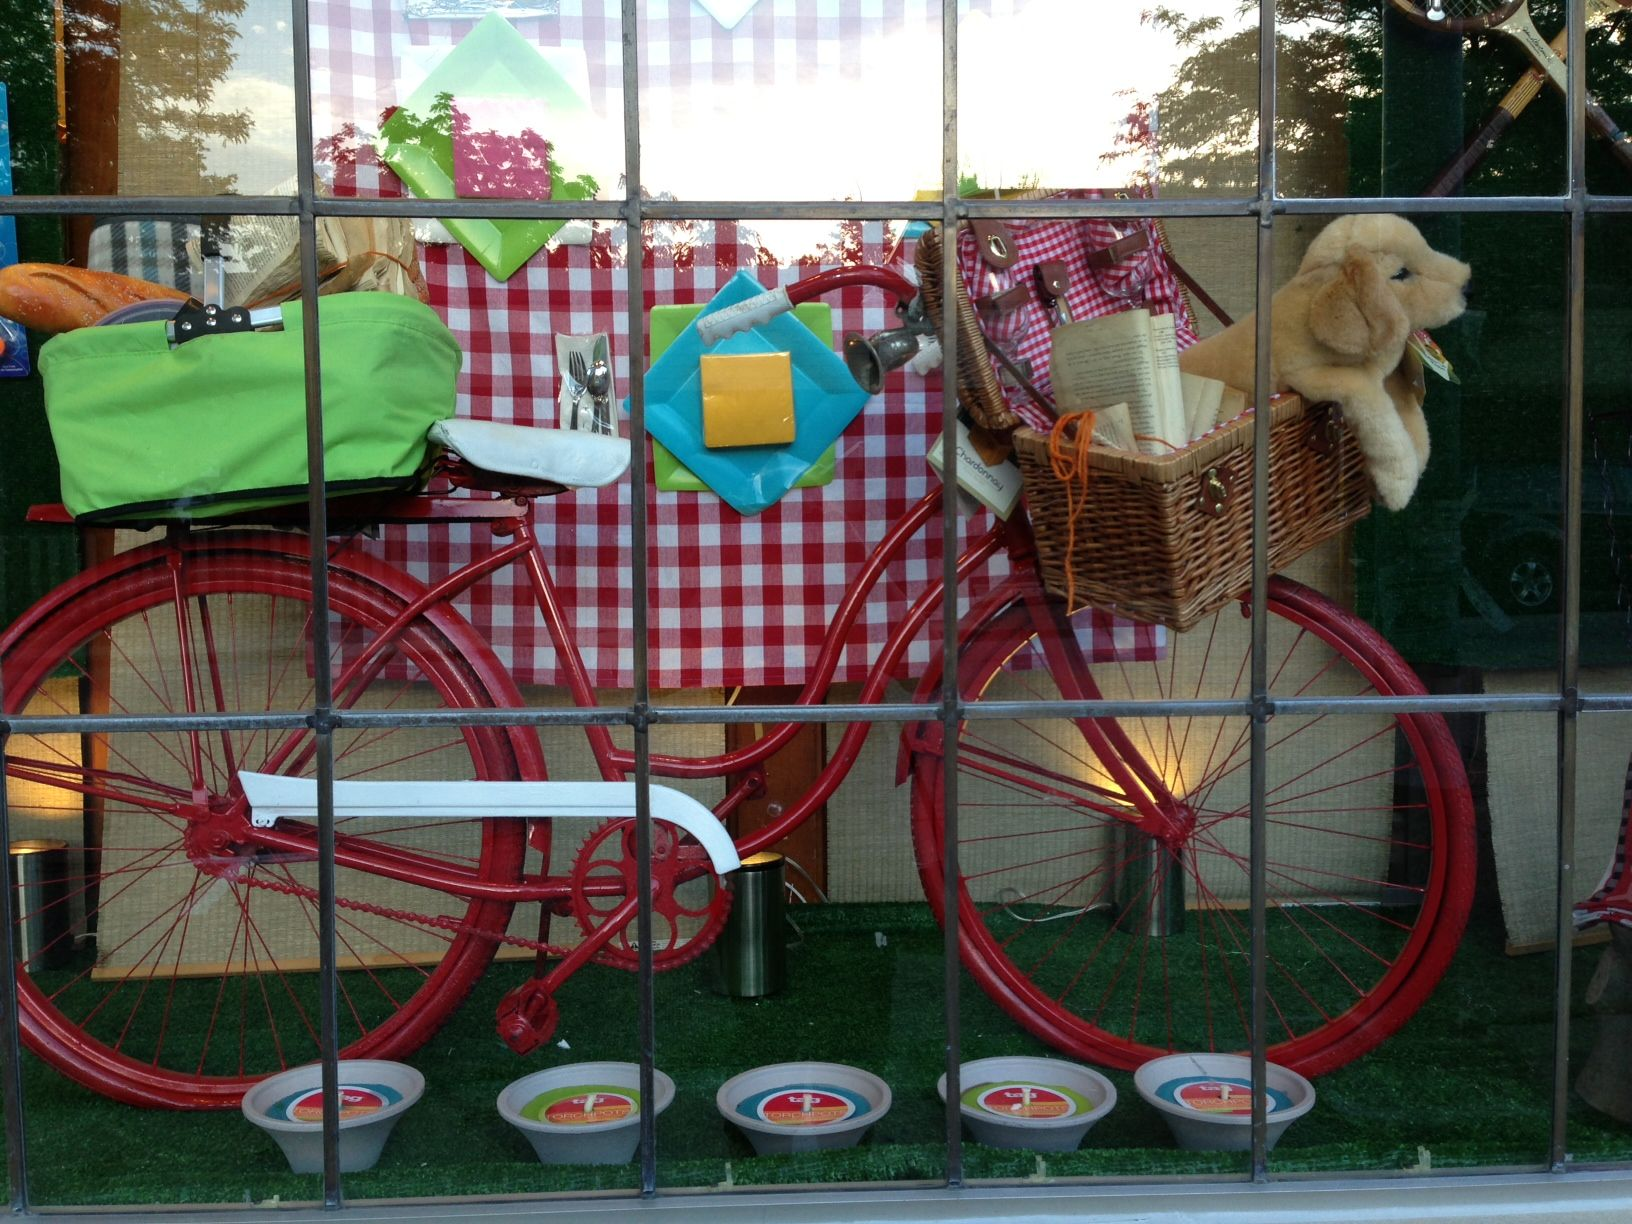 A red bike provides a focal point for this window filled